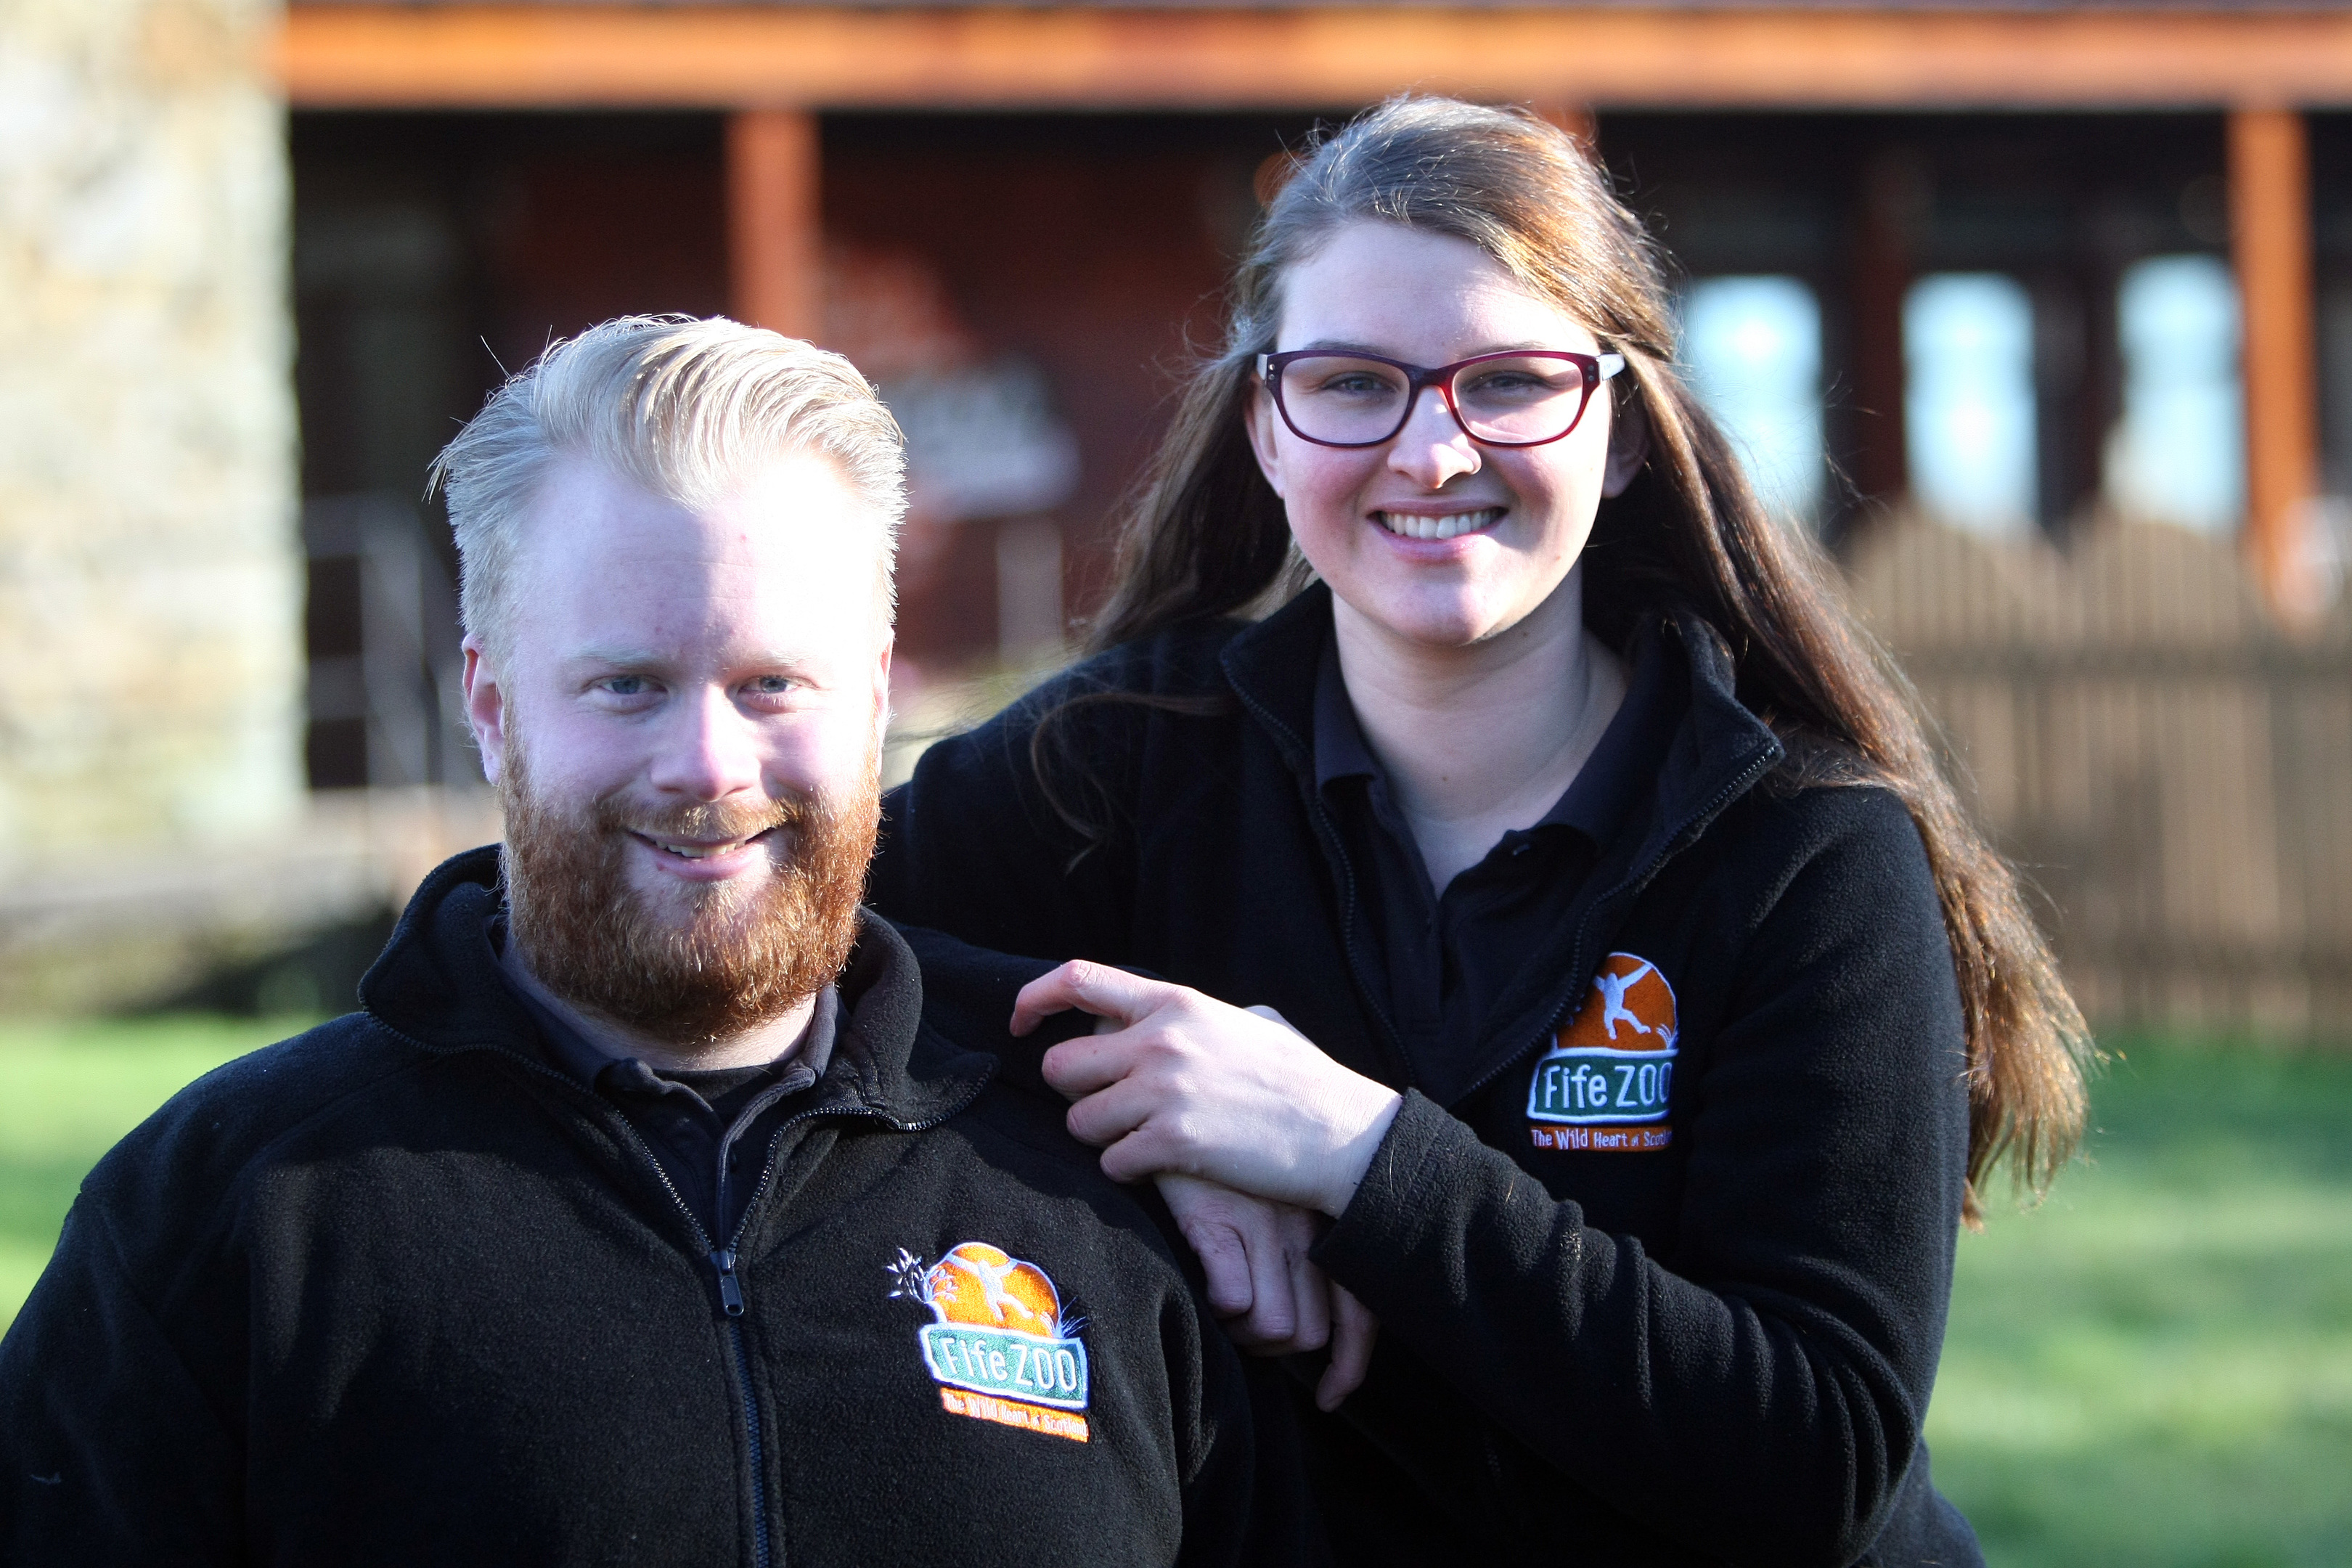 Fife Zoo owners Briony Taylor and Michael Knight